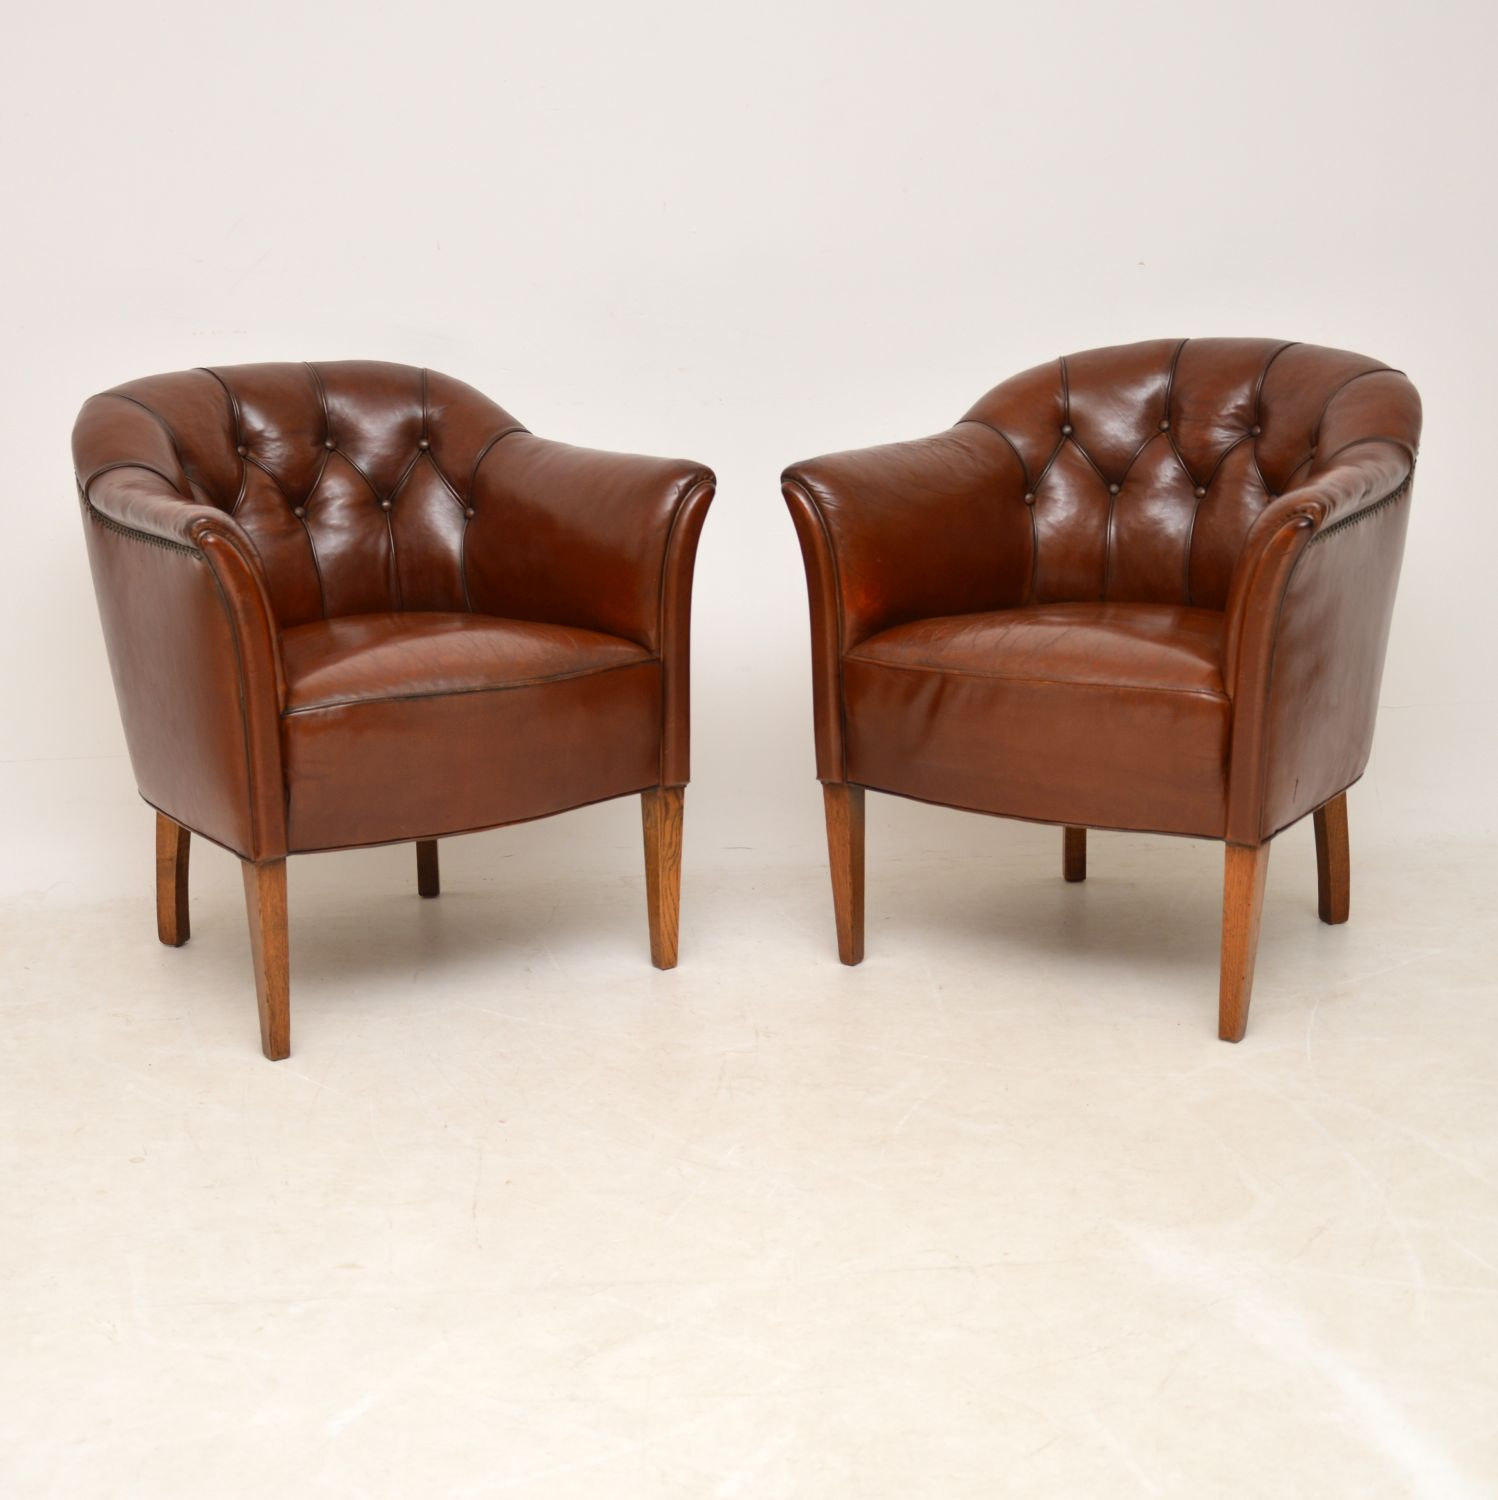 Pair of Antique Swedish Deep Buttoned Leather Armchairs